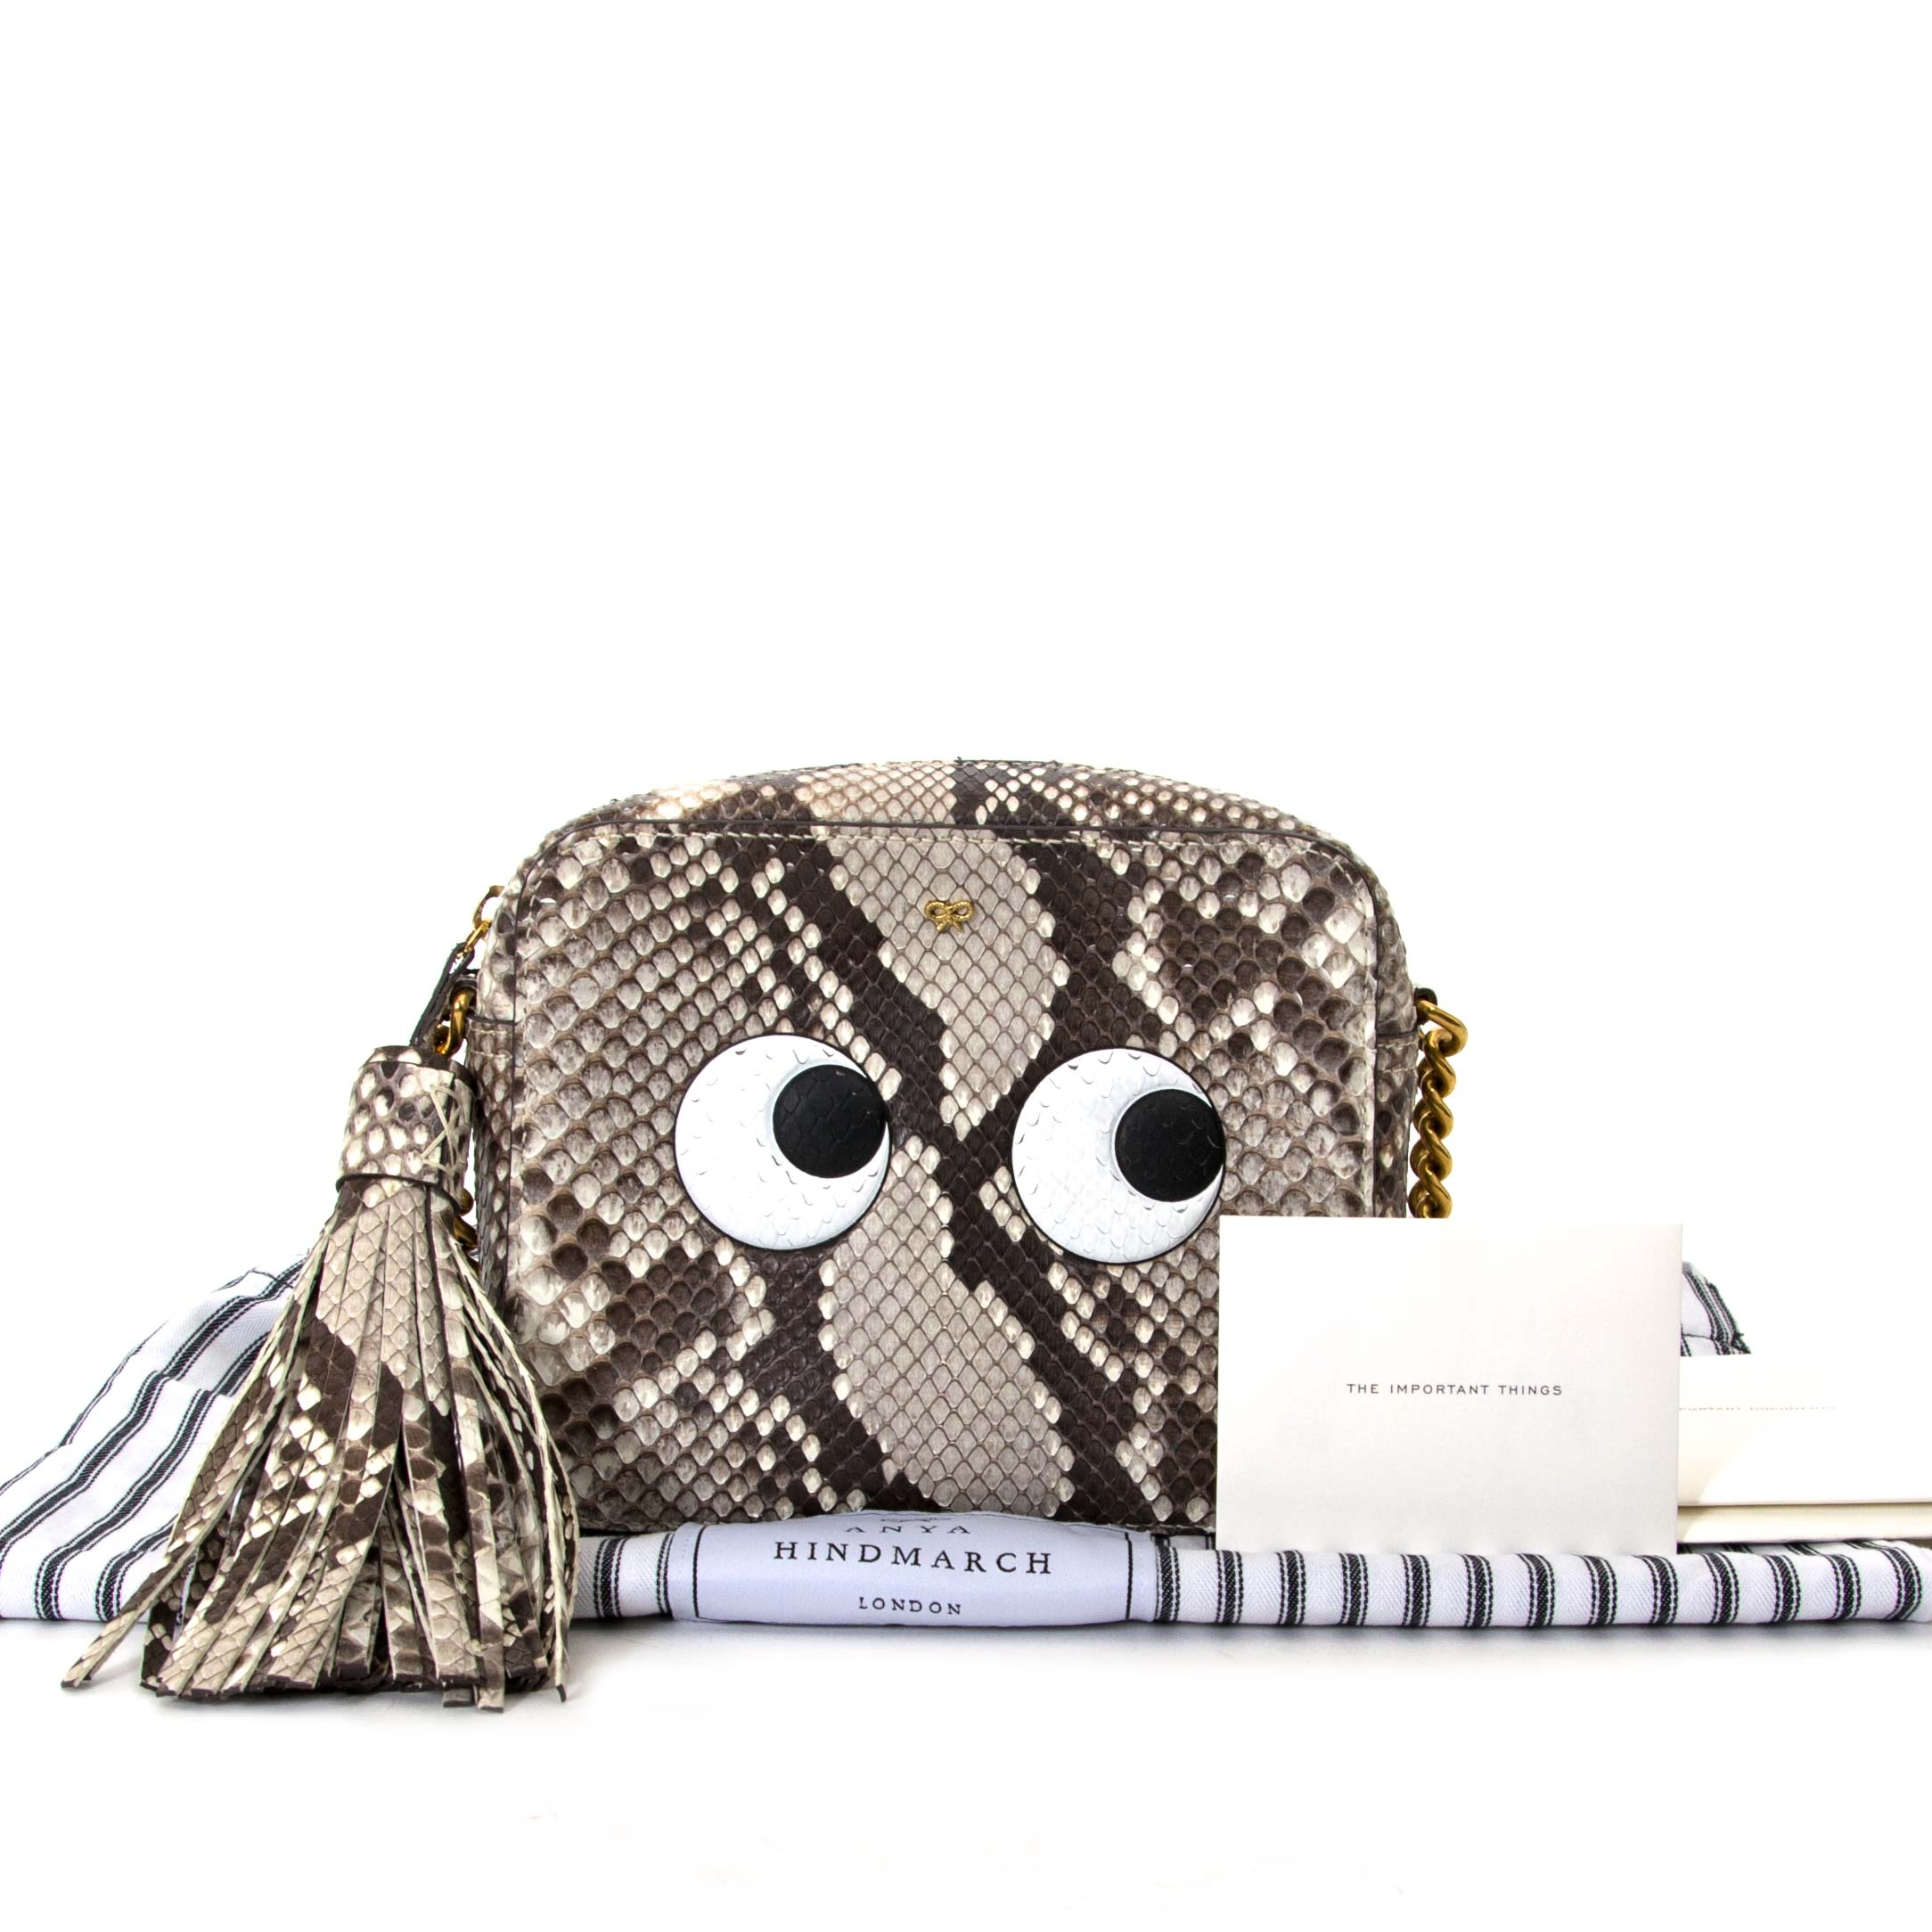 anya hindmarch python eyes right crossbody bag now for sale at labellov vintage fashion webshop belgium